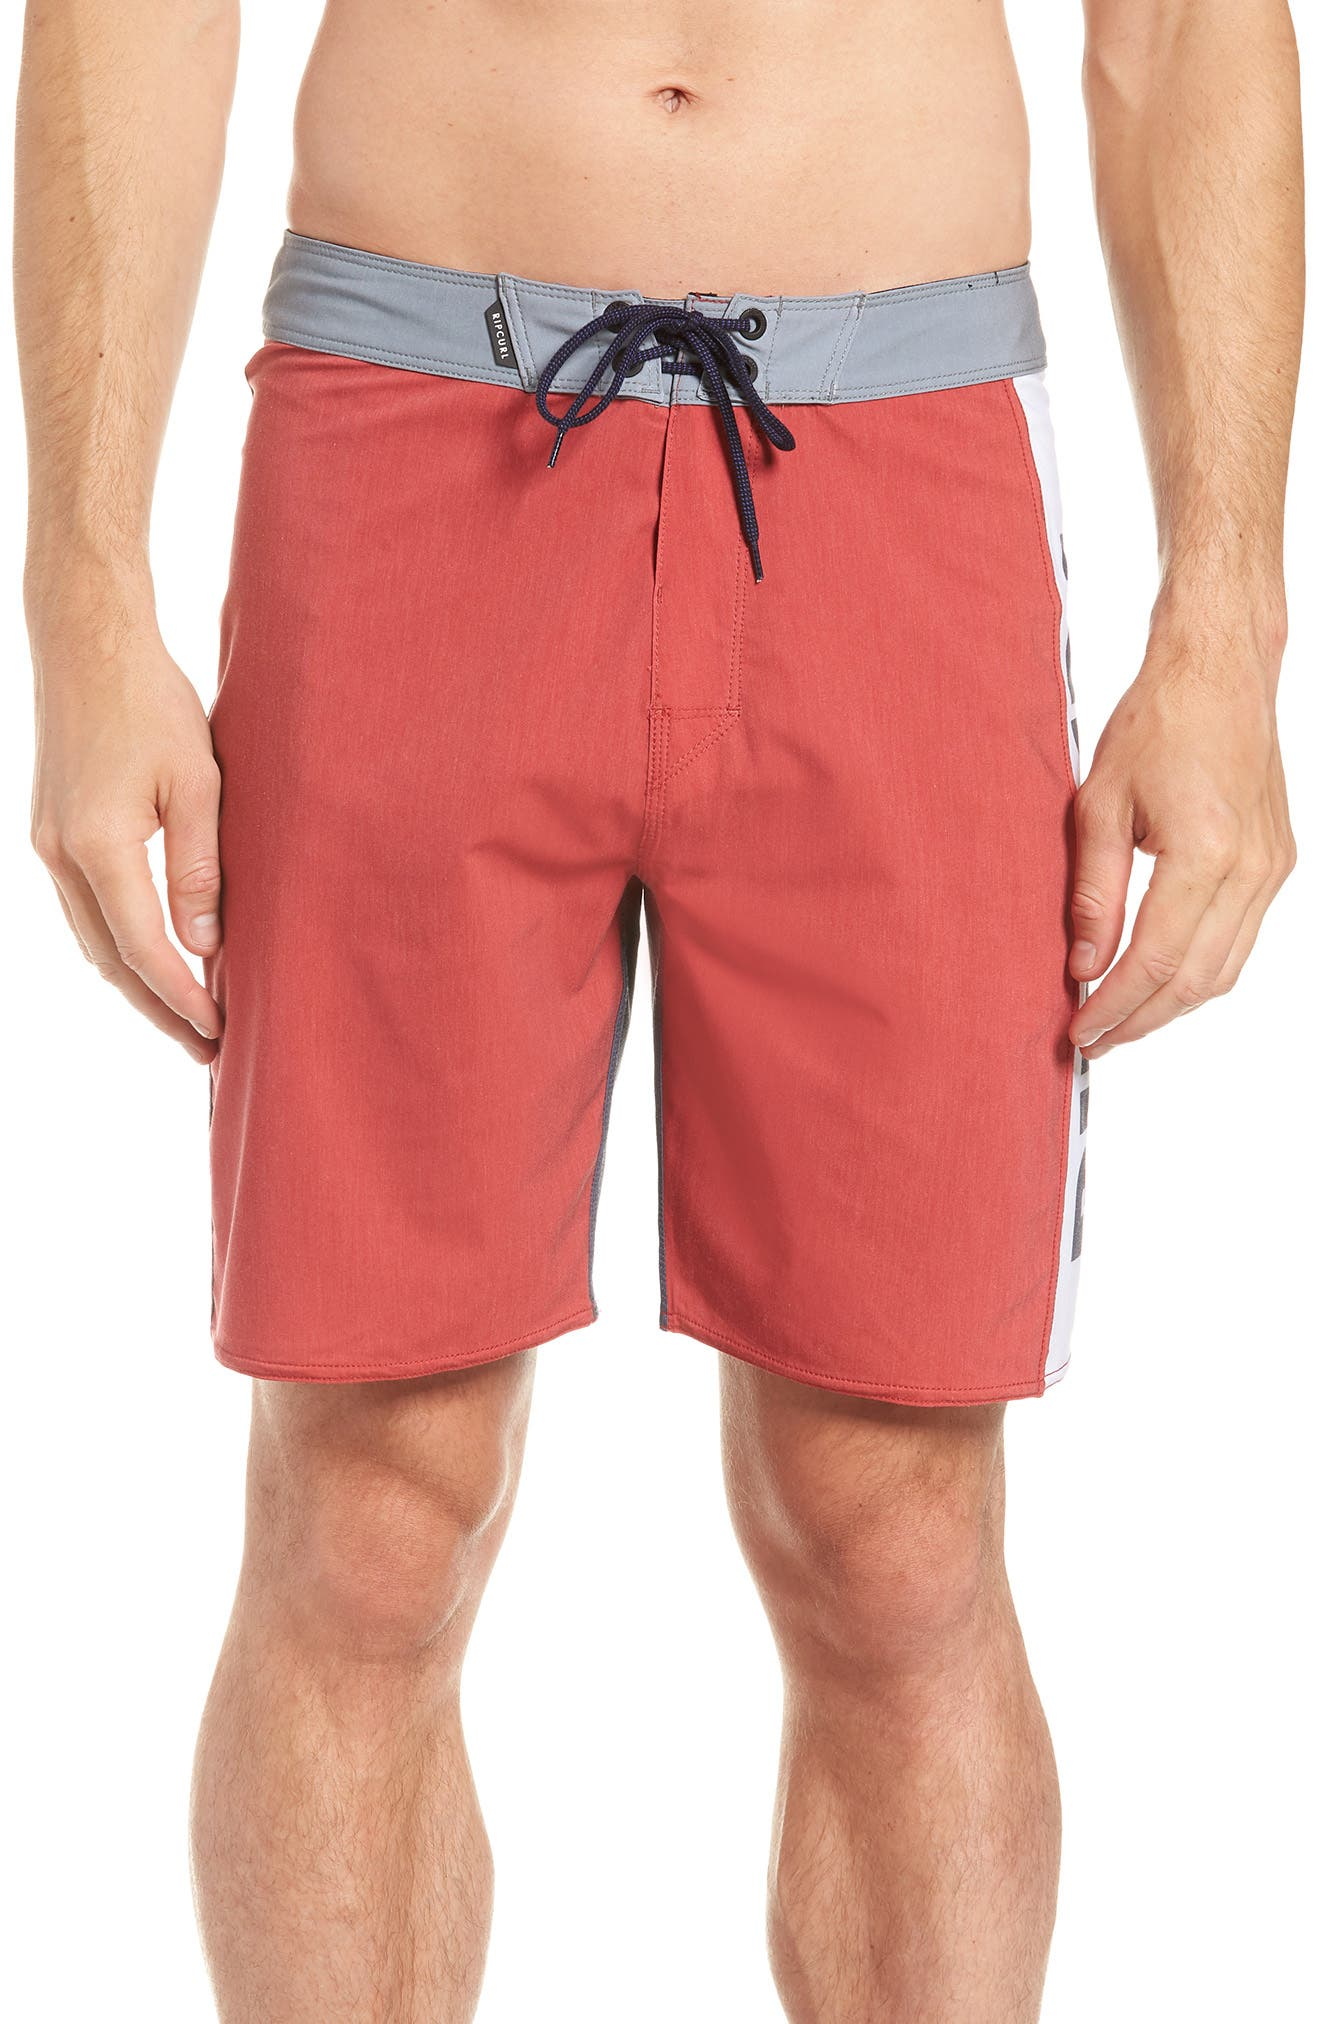 Mirage Owen Stretch Board Shorts,                             Main thumbnail 1, color,                             Red